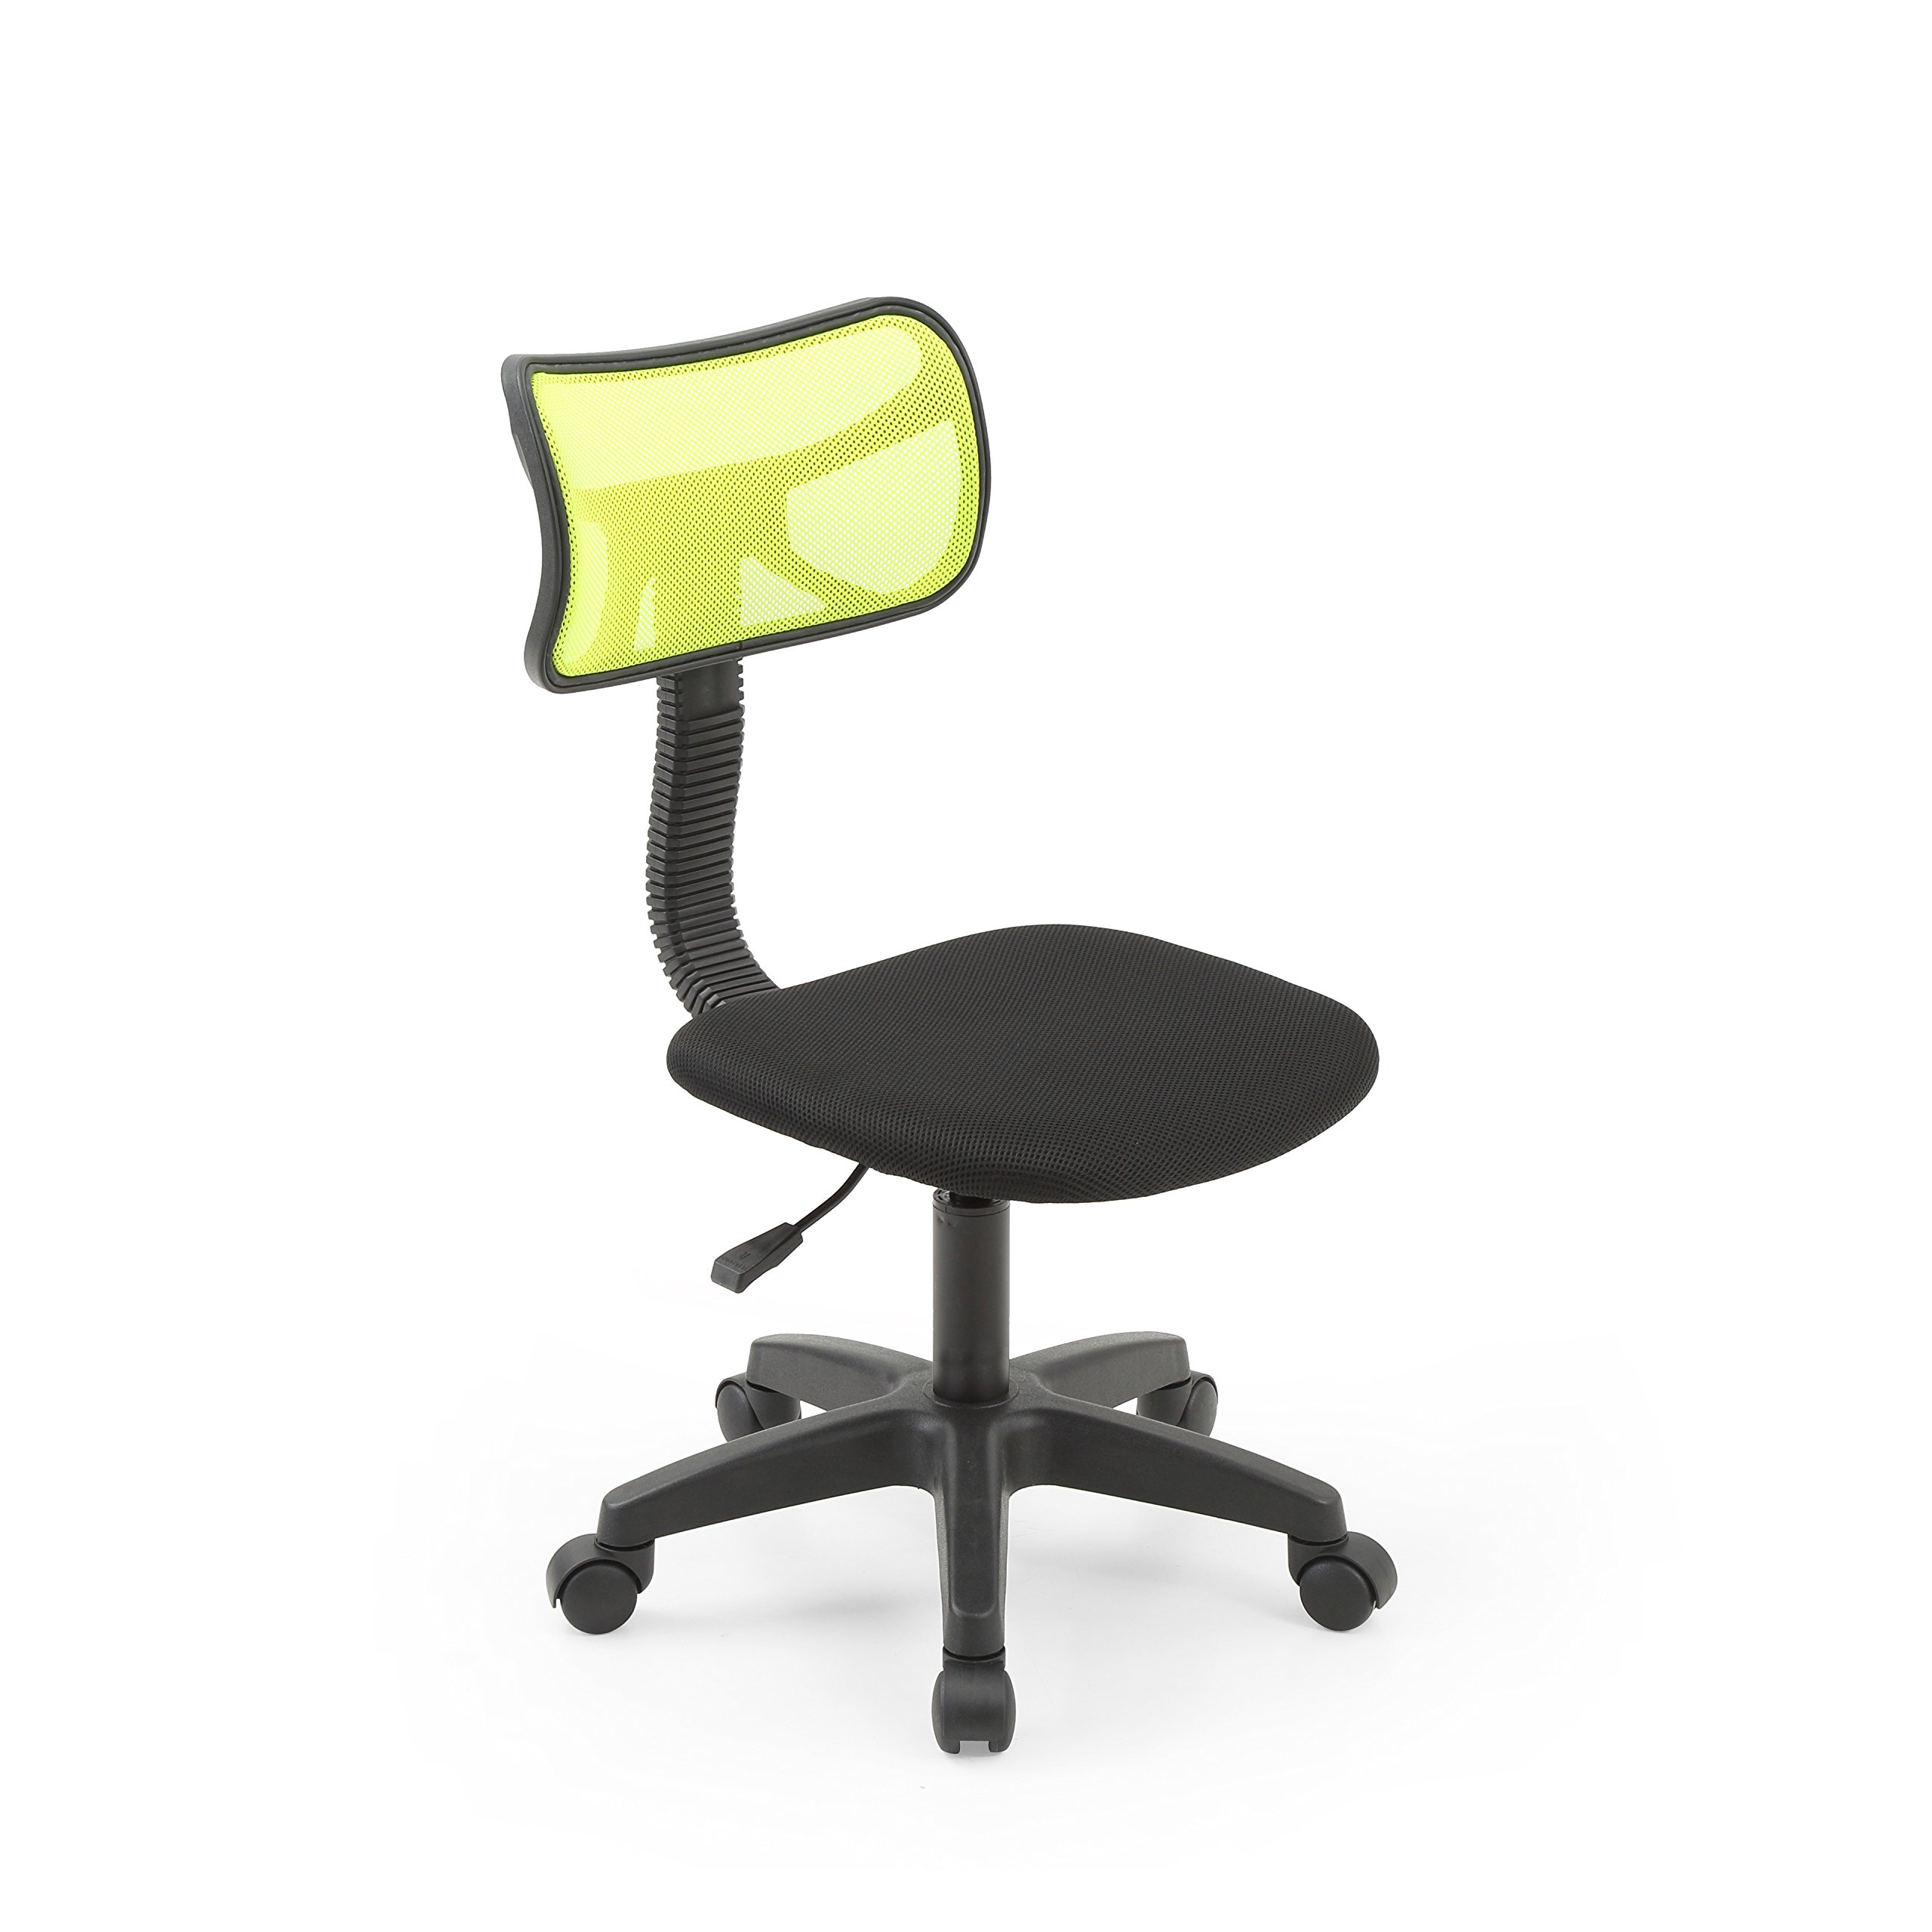 HODEDAH IMPORT Hodedah Mesh Armless Task Chair with Adjustable Height and Swivel Functionality, Green